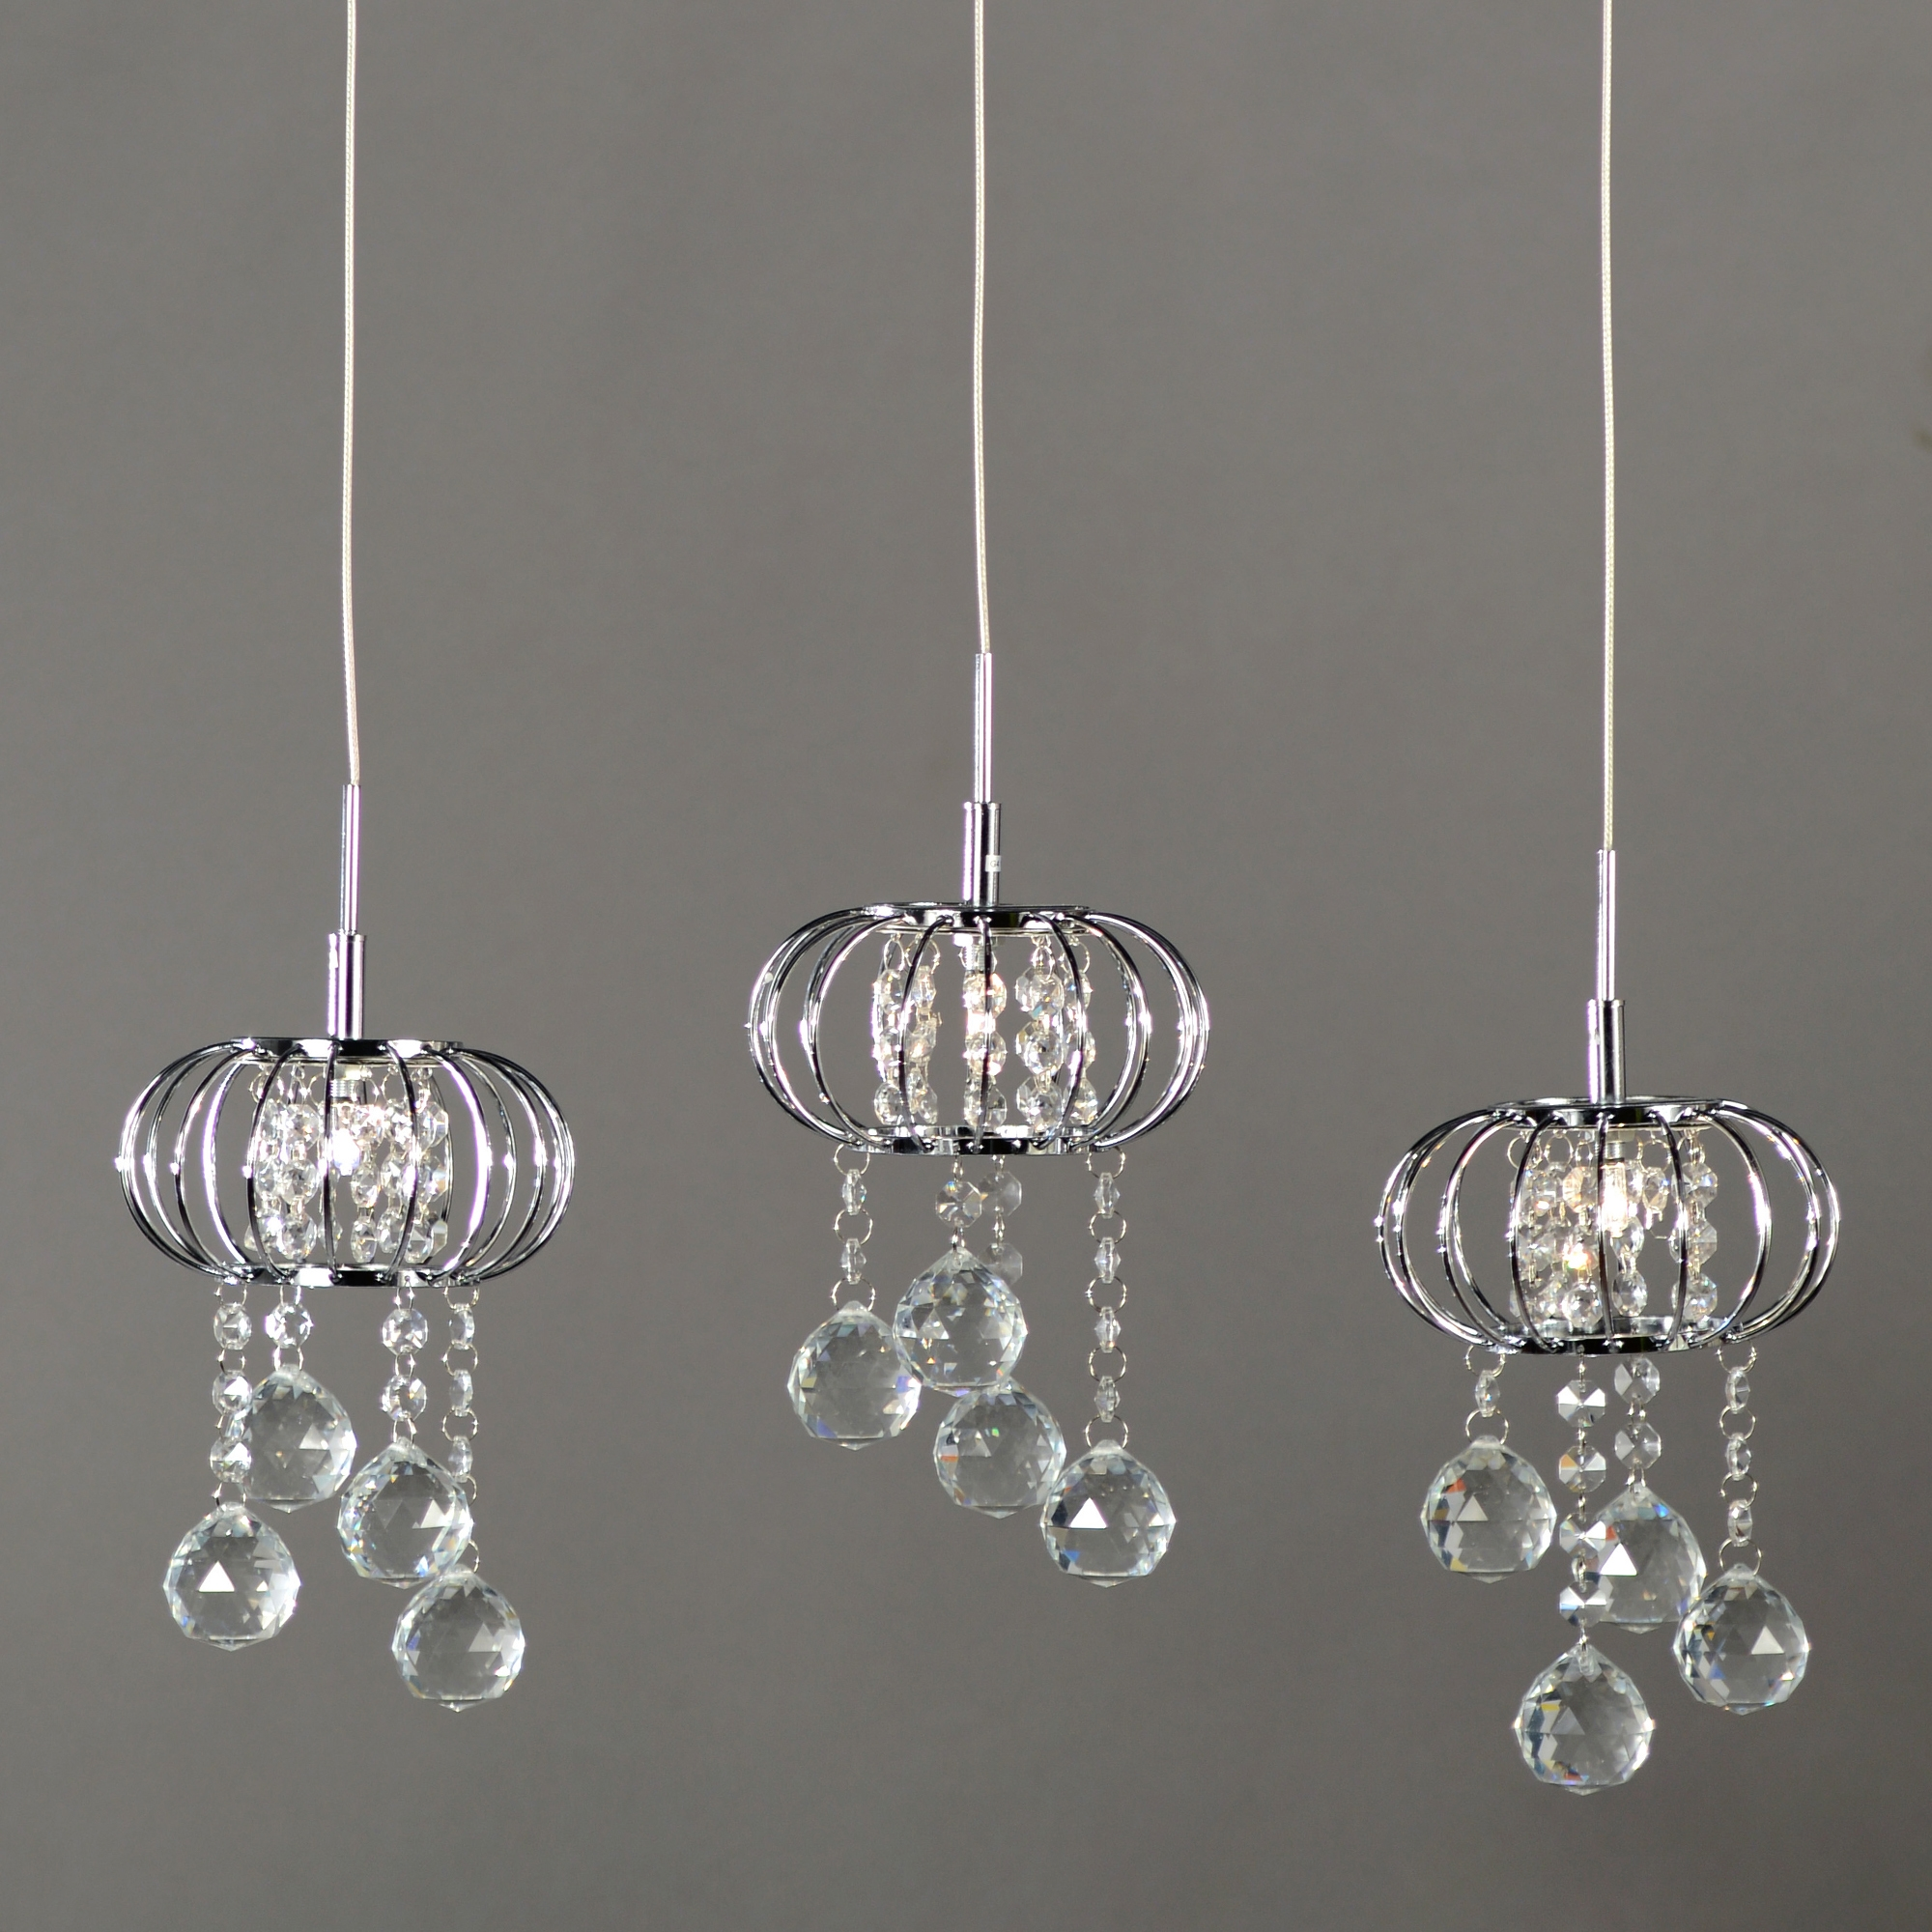 Crystal 3 Light Chandelier - Chrome and Clear